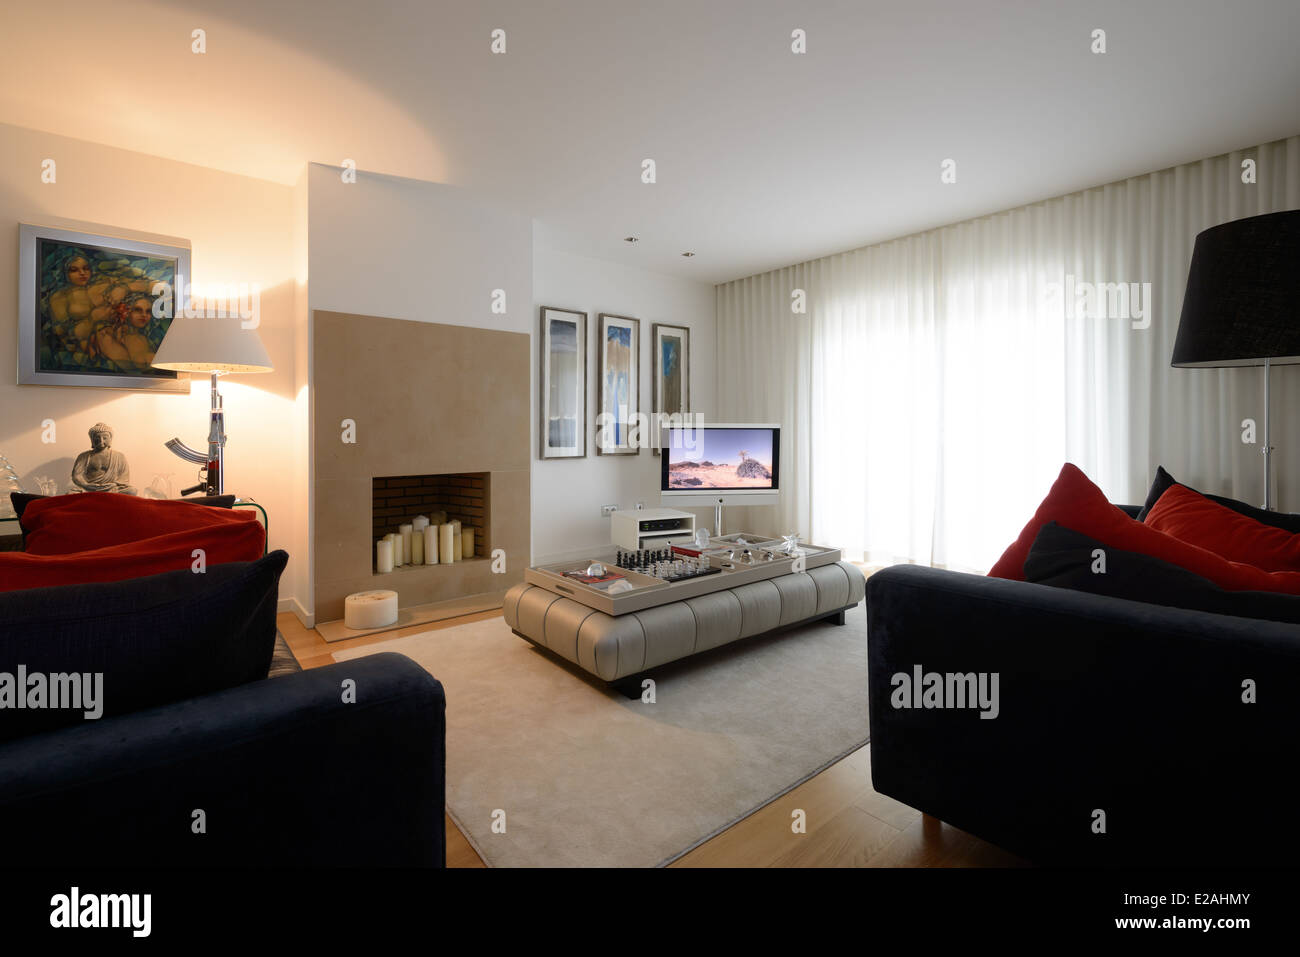 Modern living room with fireplace - Stock Image